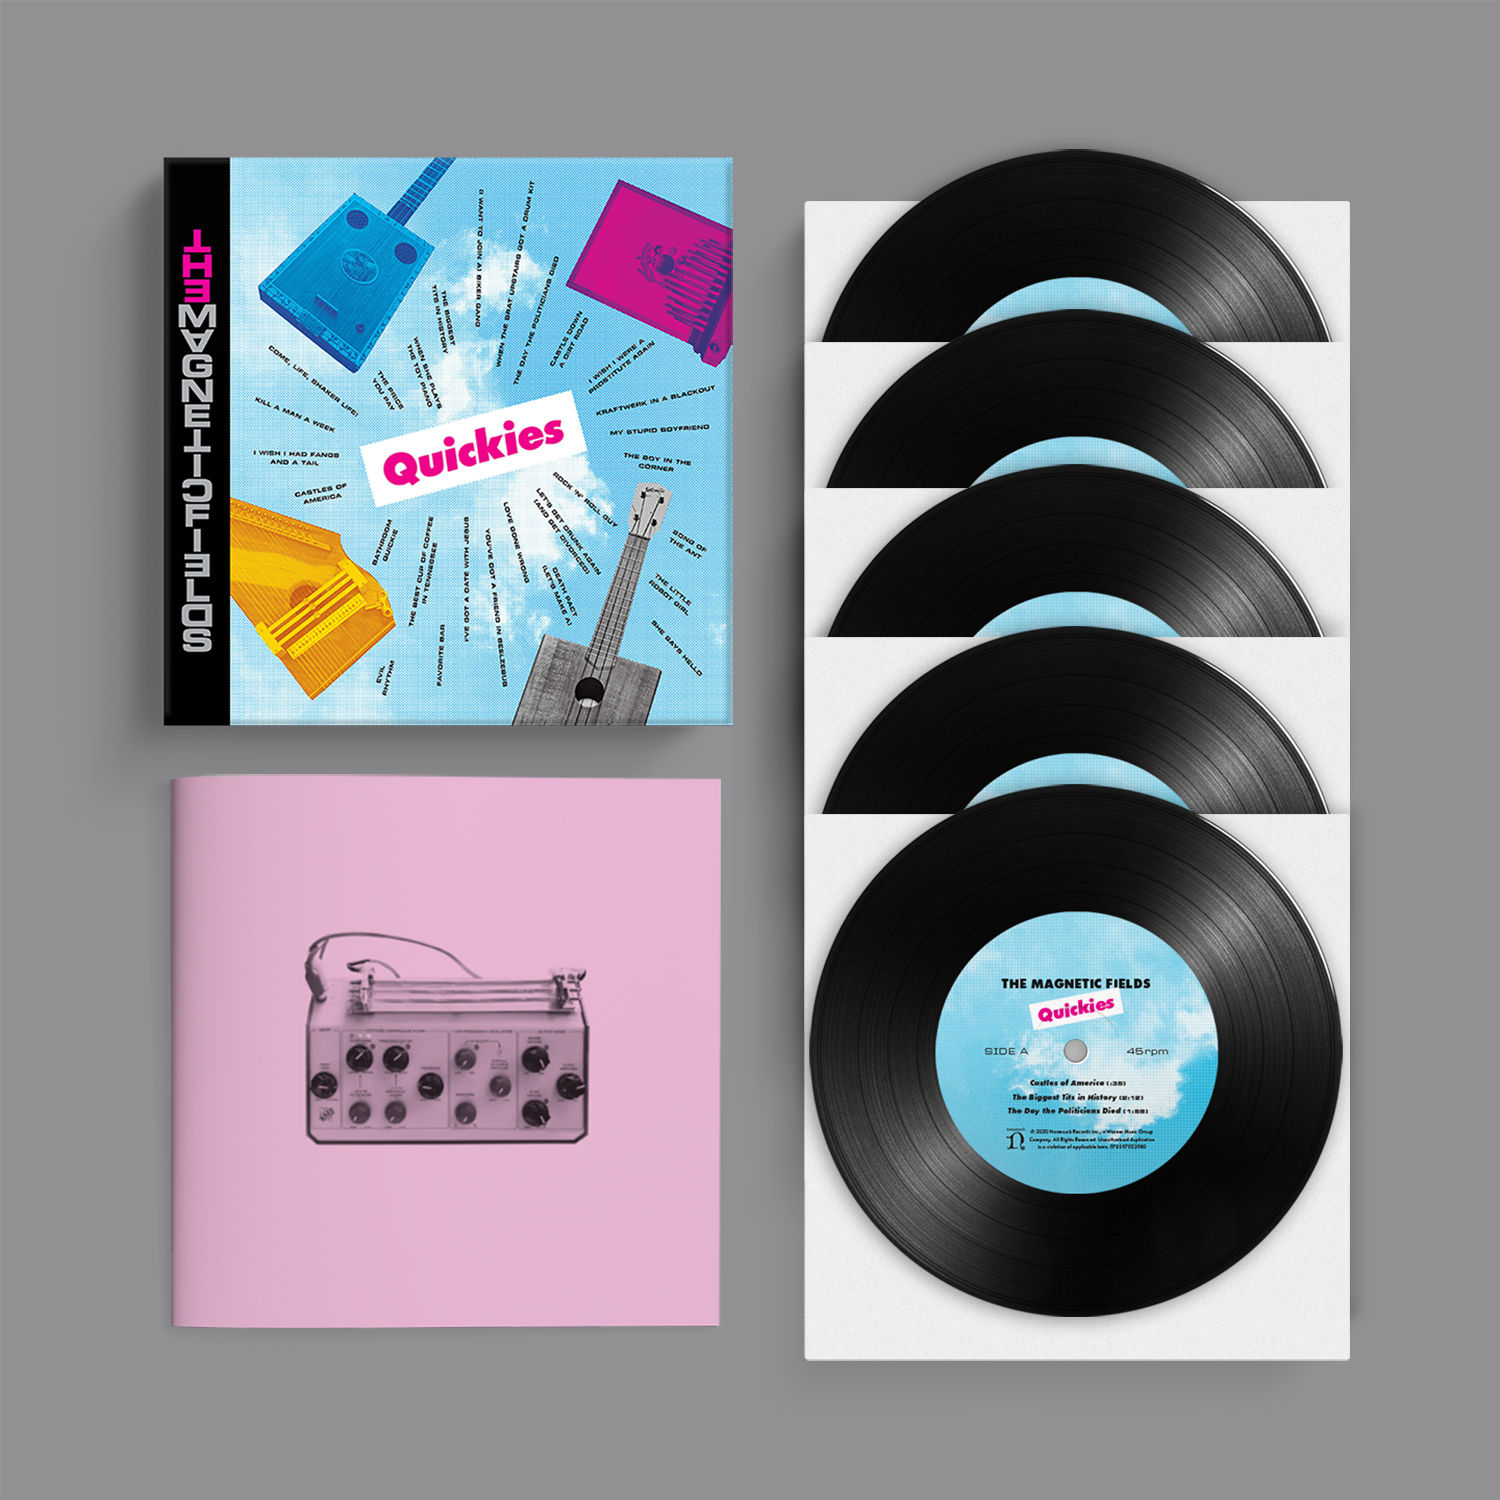 The Magnetic Fields – Quickies Limited Edition Box Set